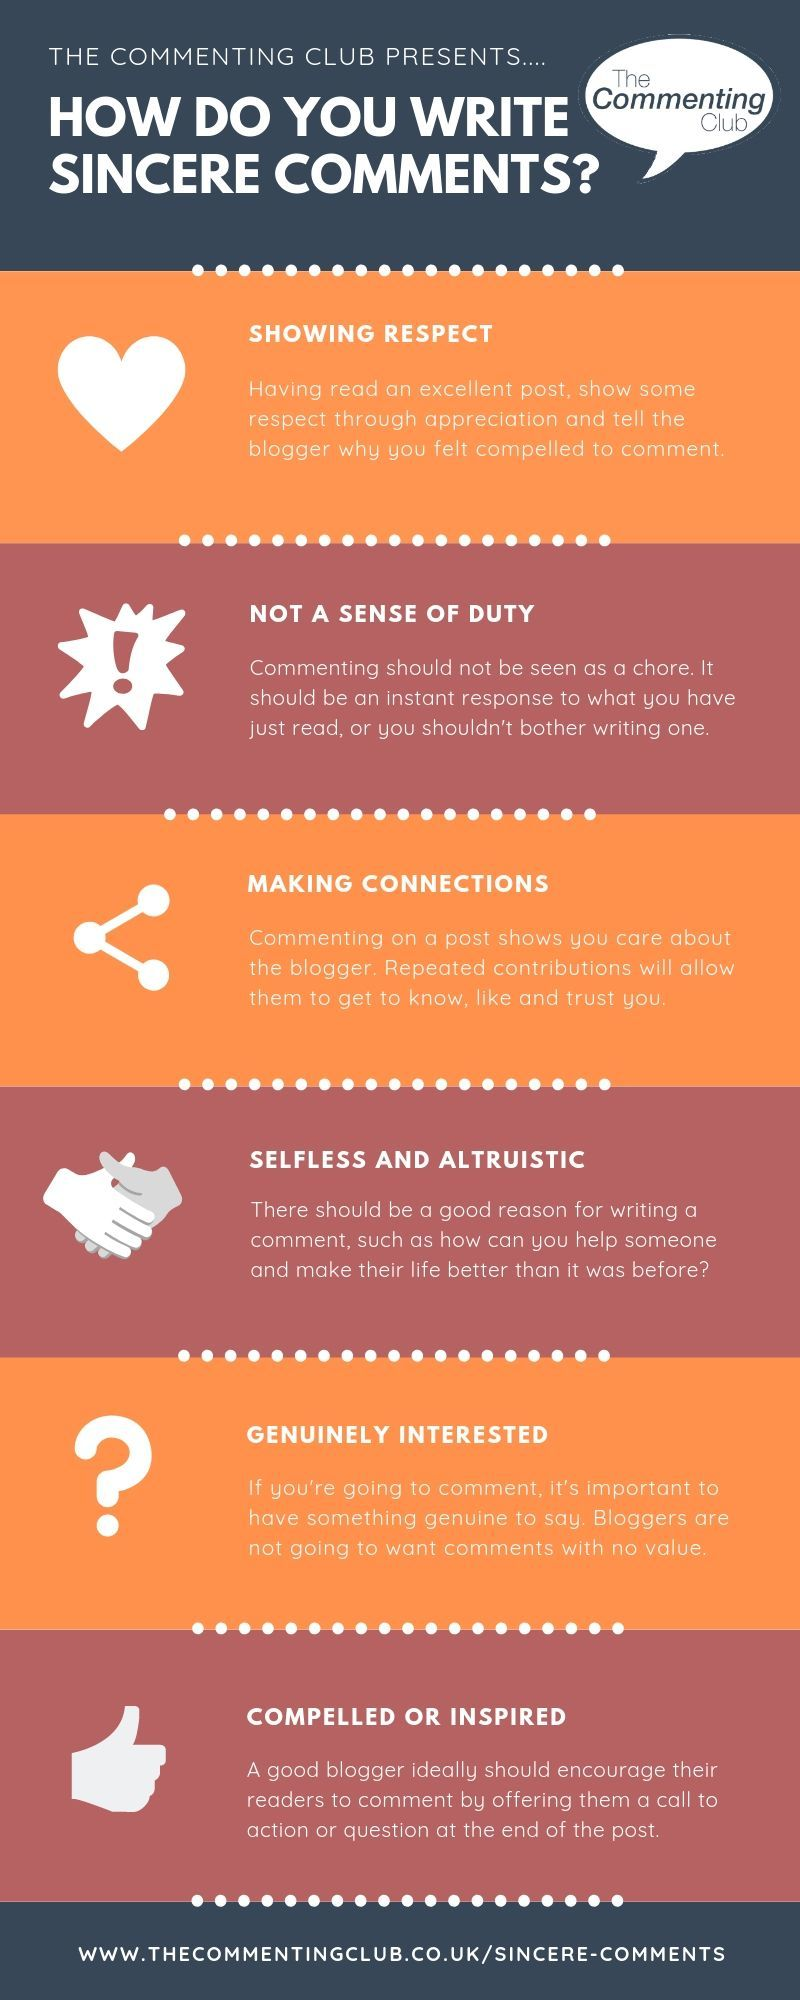 Why it's important to write sincere comments